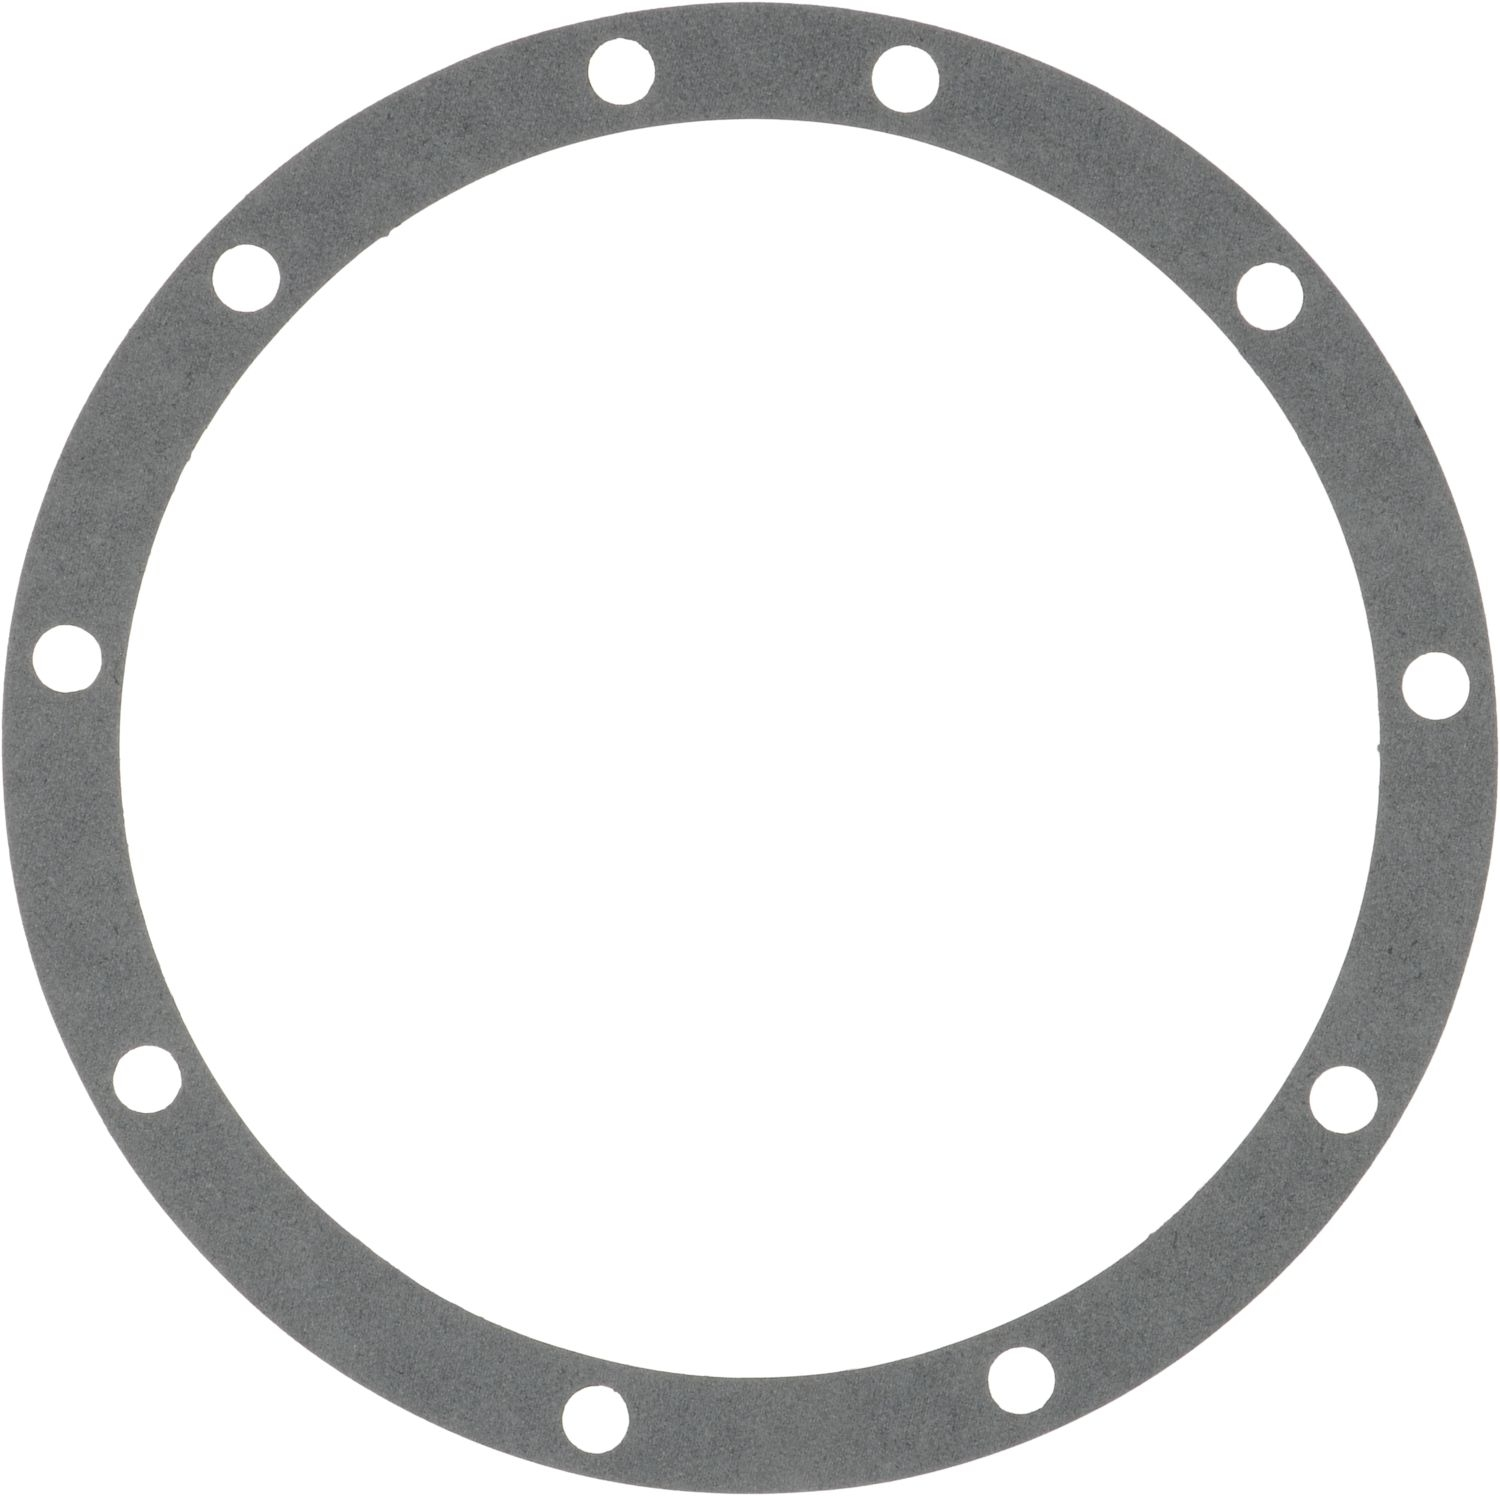 VICTOR REINZ - Differential Cover Gasket (Rear) - VRZ P27930